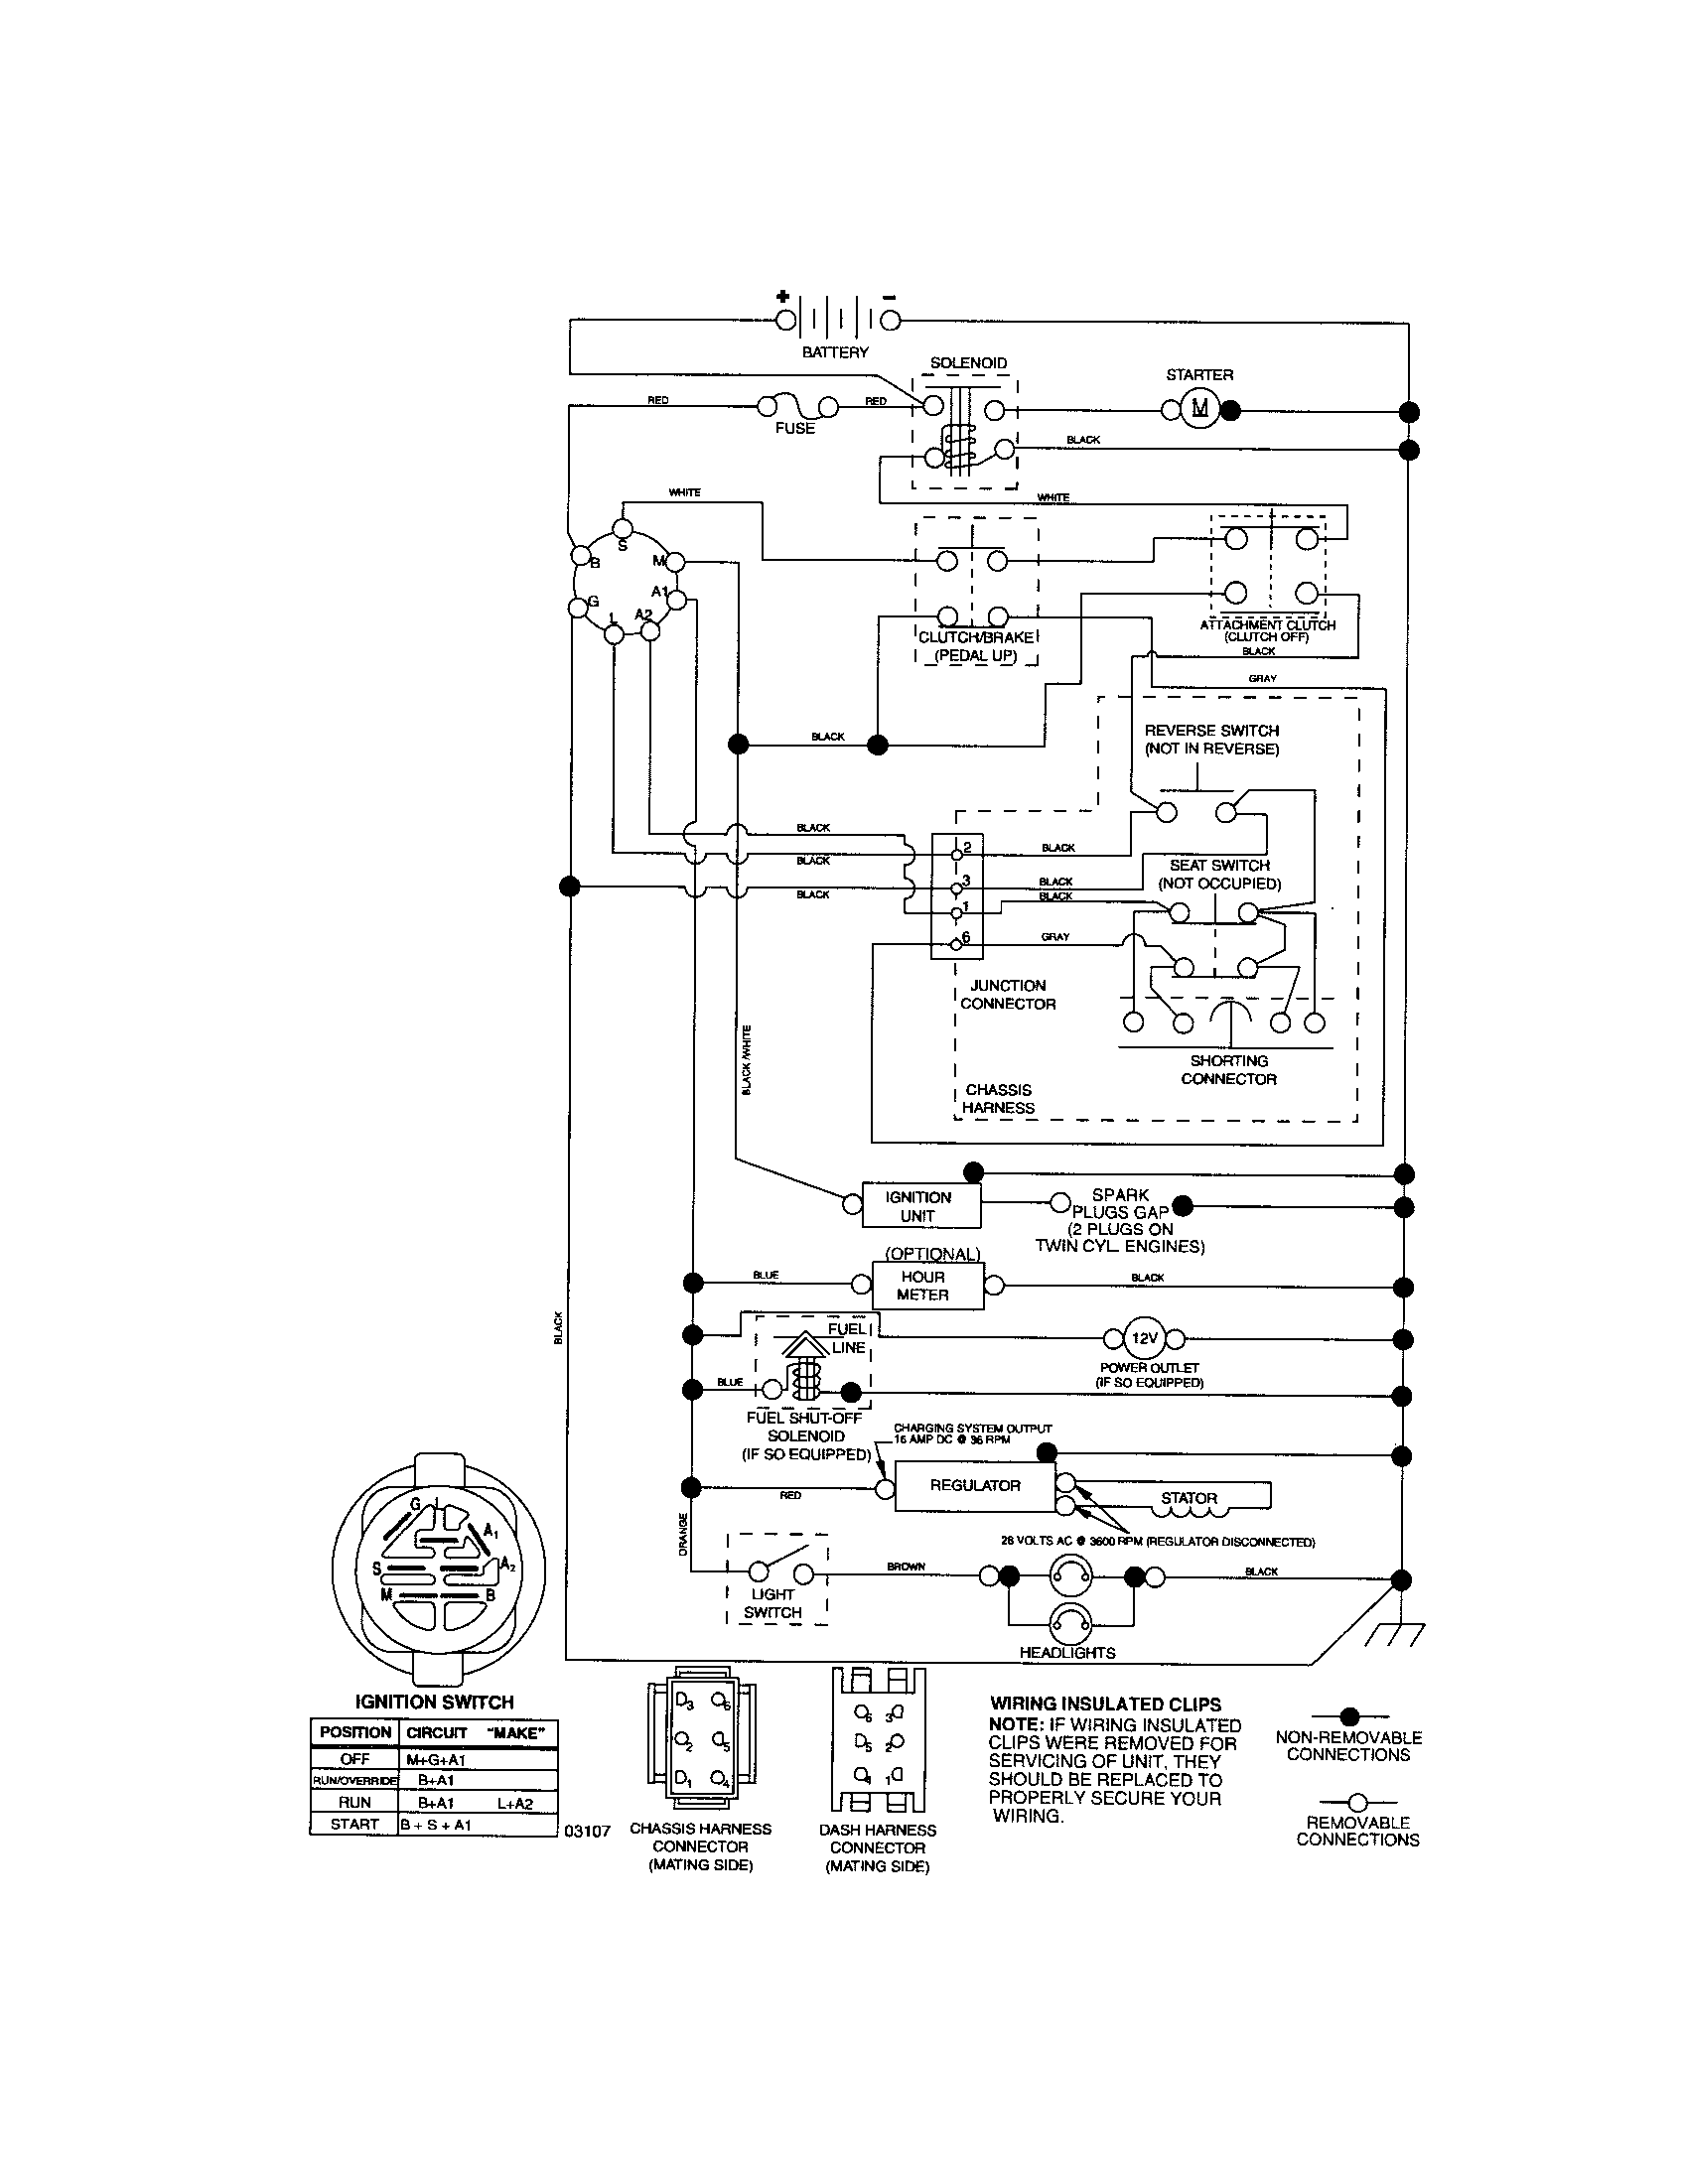 6af5f1447fd13c8443376822ddc1e105 craftsman riding mower electrical diagram wiring diagram murray lawn mower ignition switch wiring diagram at readyjetset.co